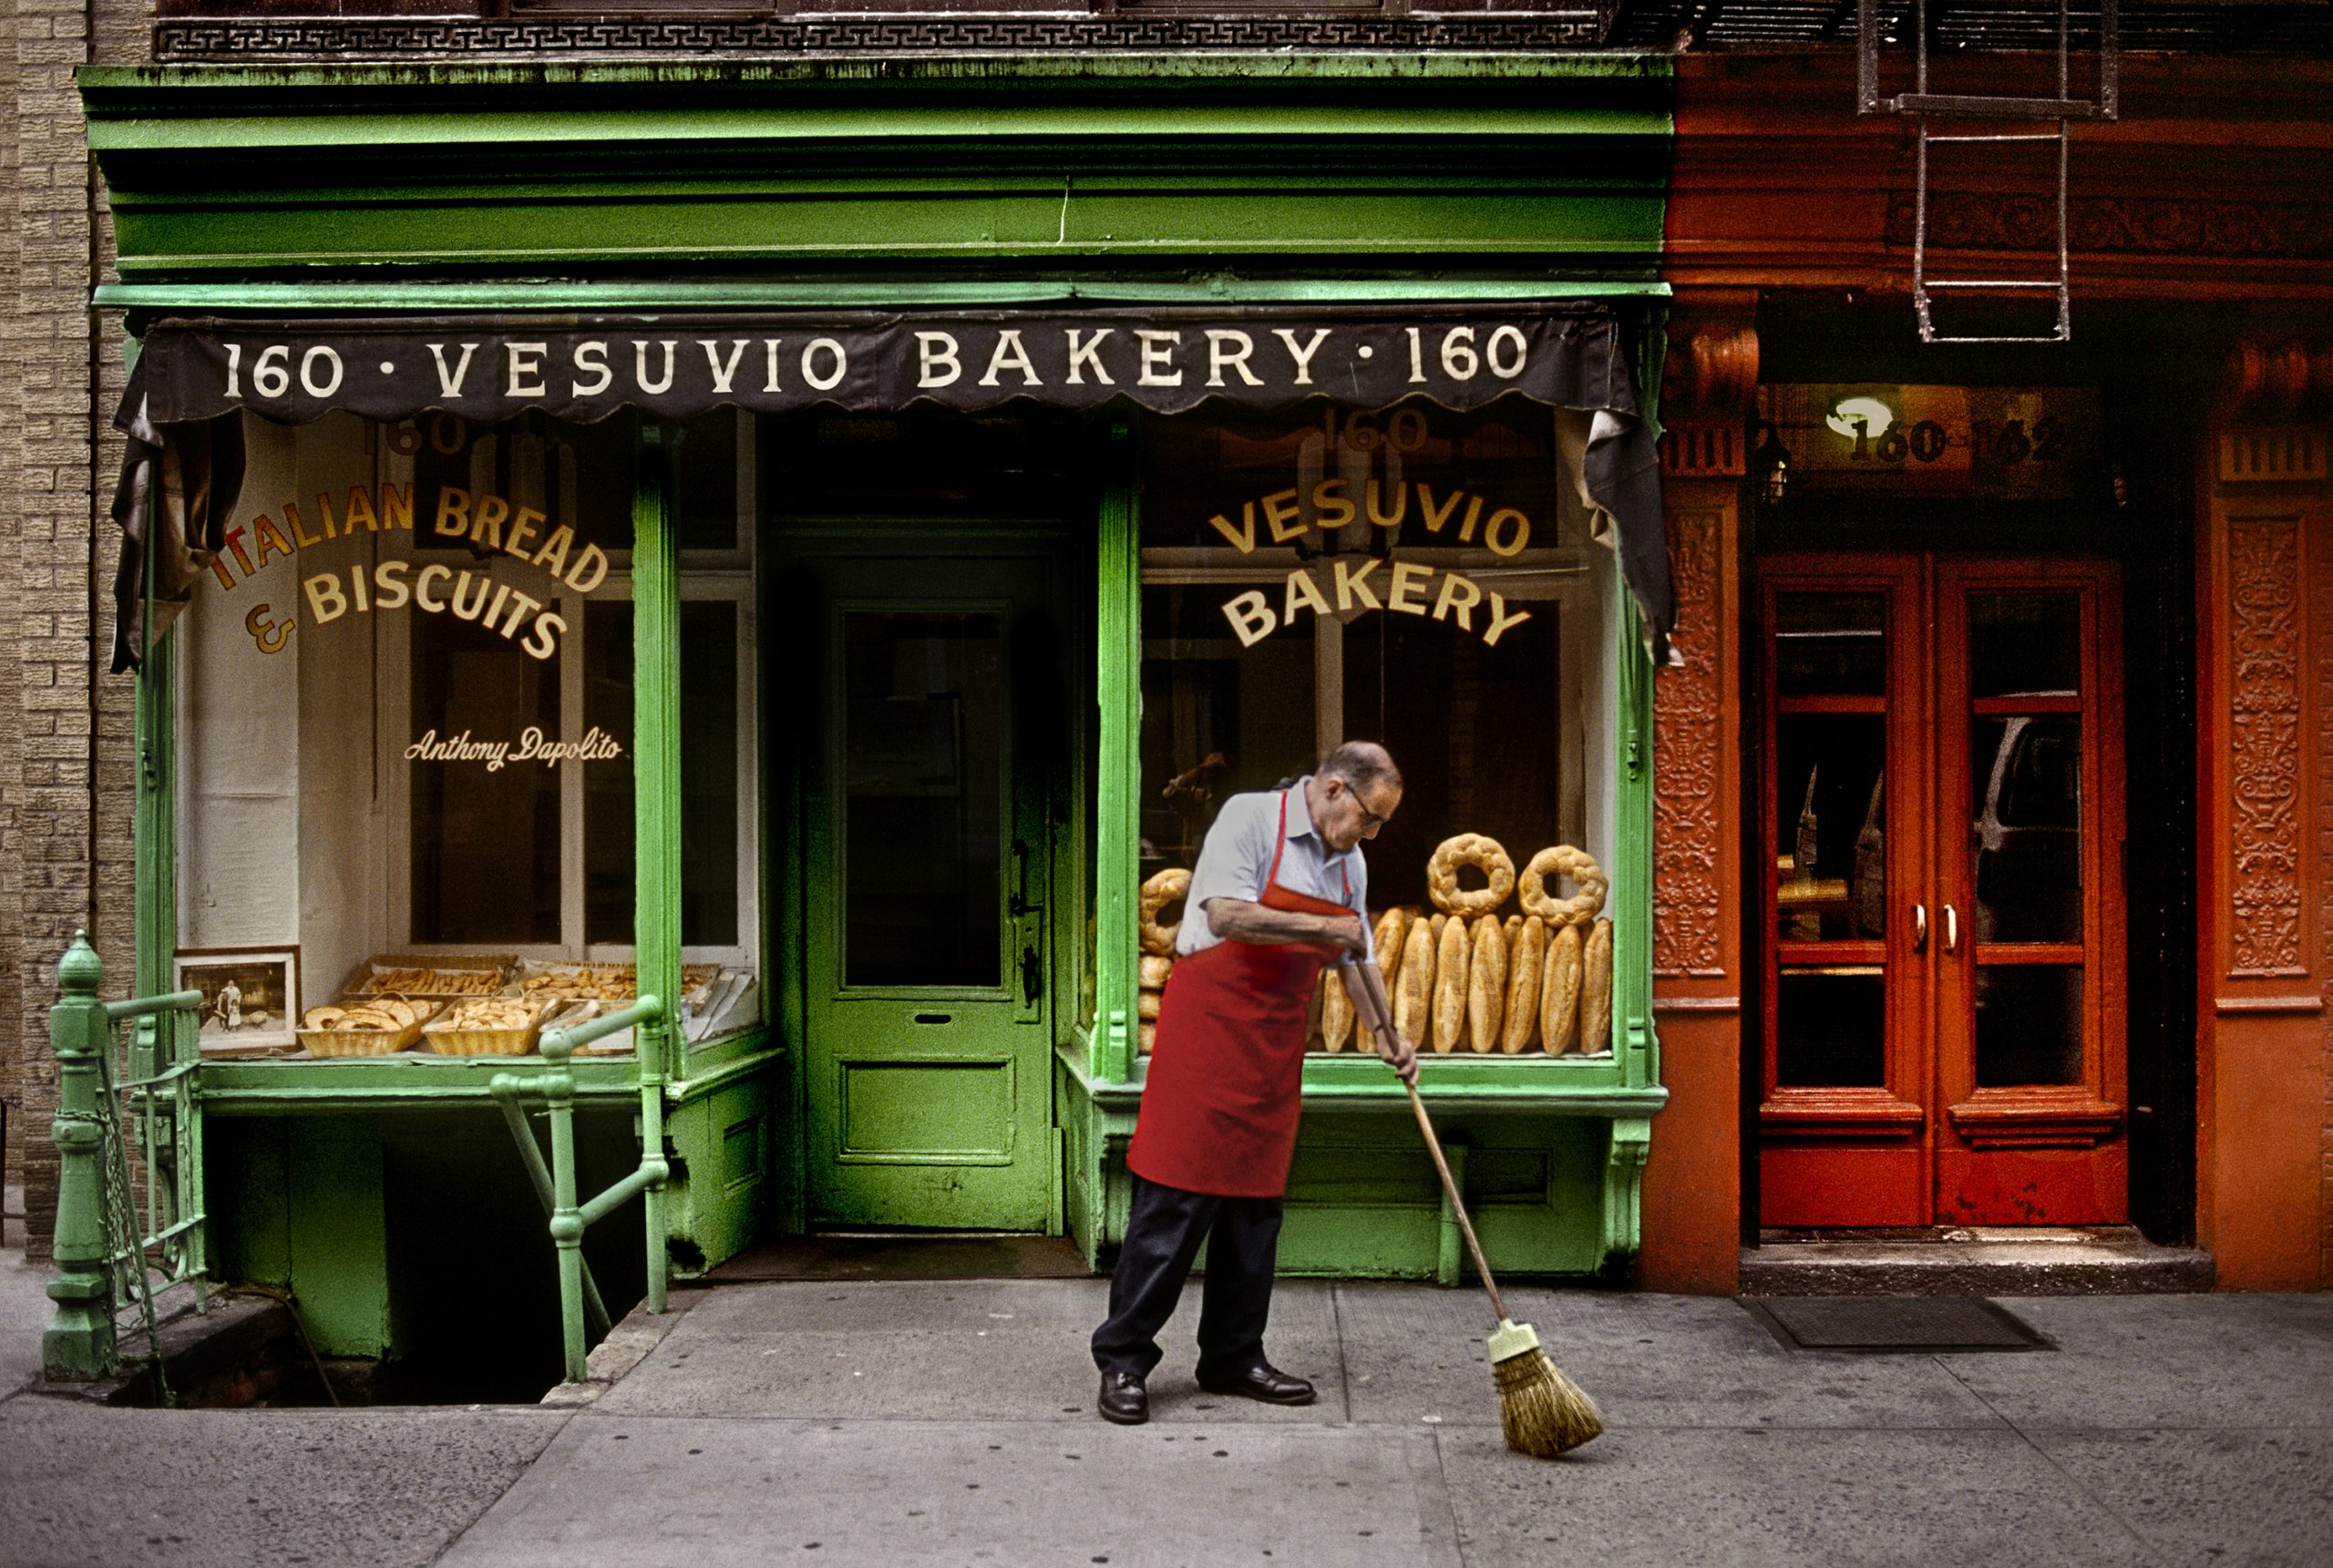 Color photograph by Steve McCurry, NYC, USA, man sweeping up on the street outside Italian bakery.